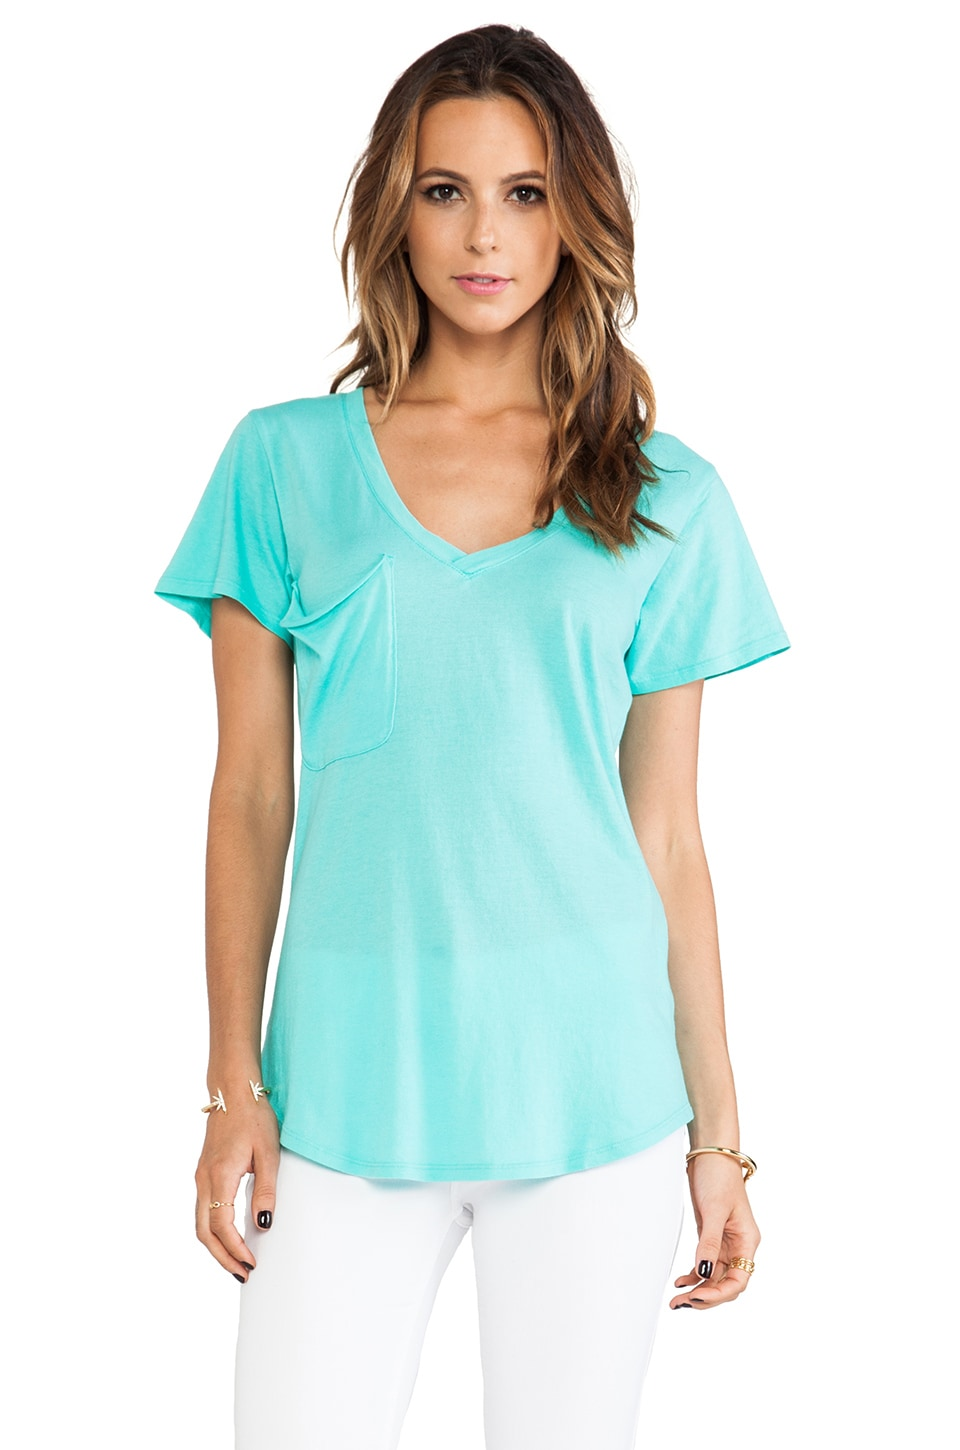 Bobi Light Weight Jersey Pocket Tee in Aqua